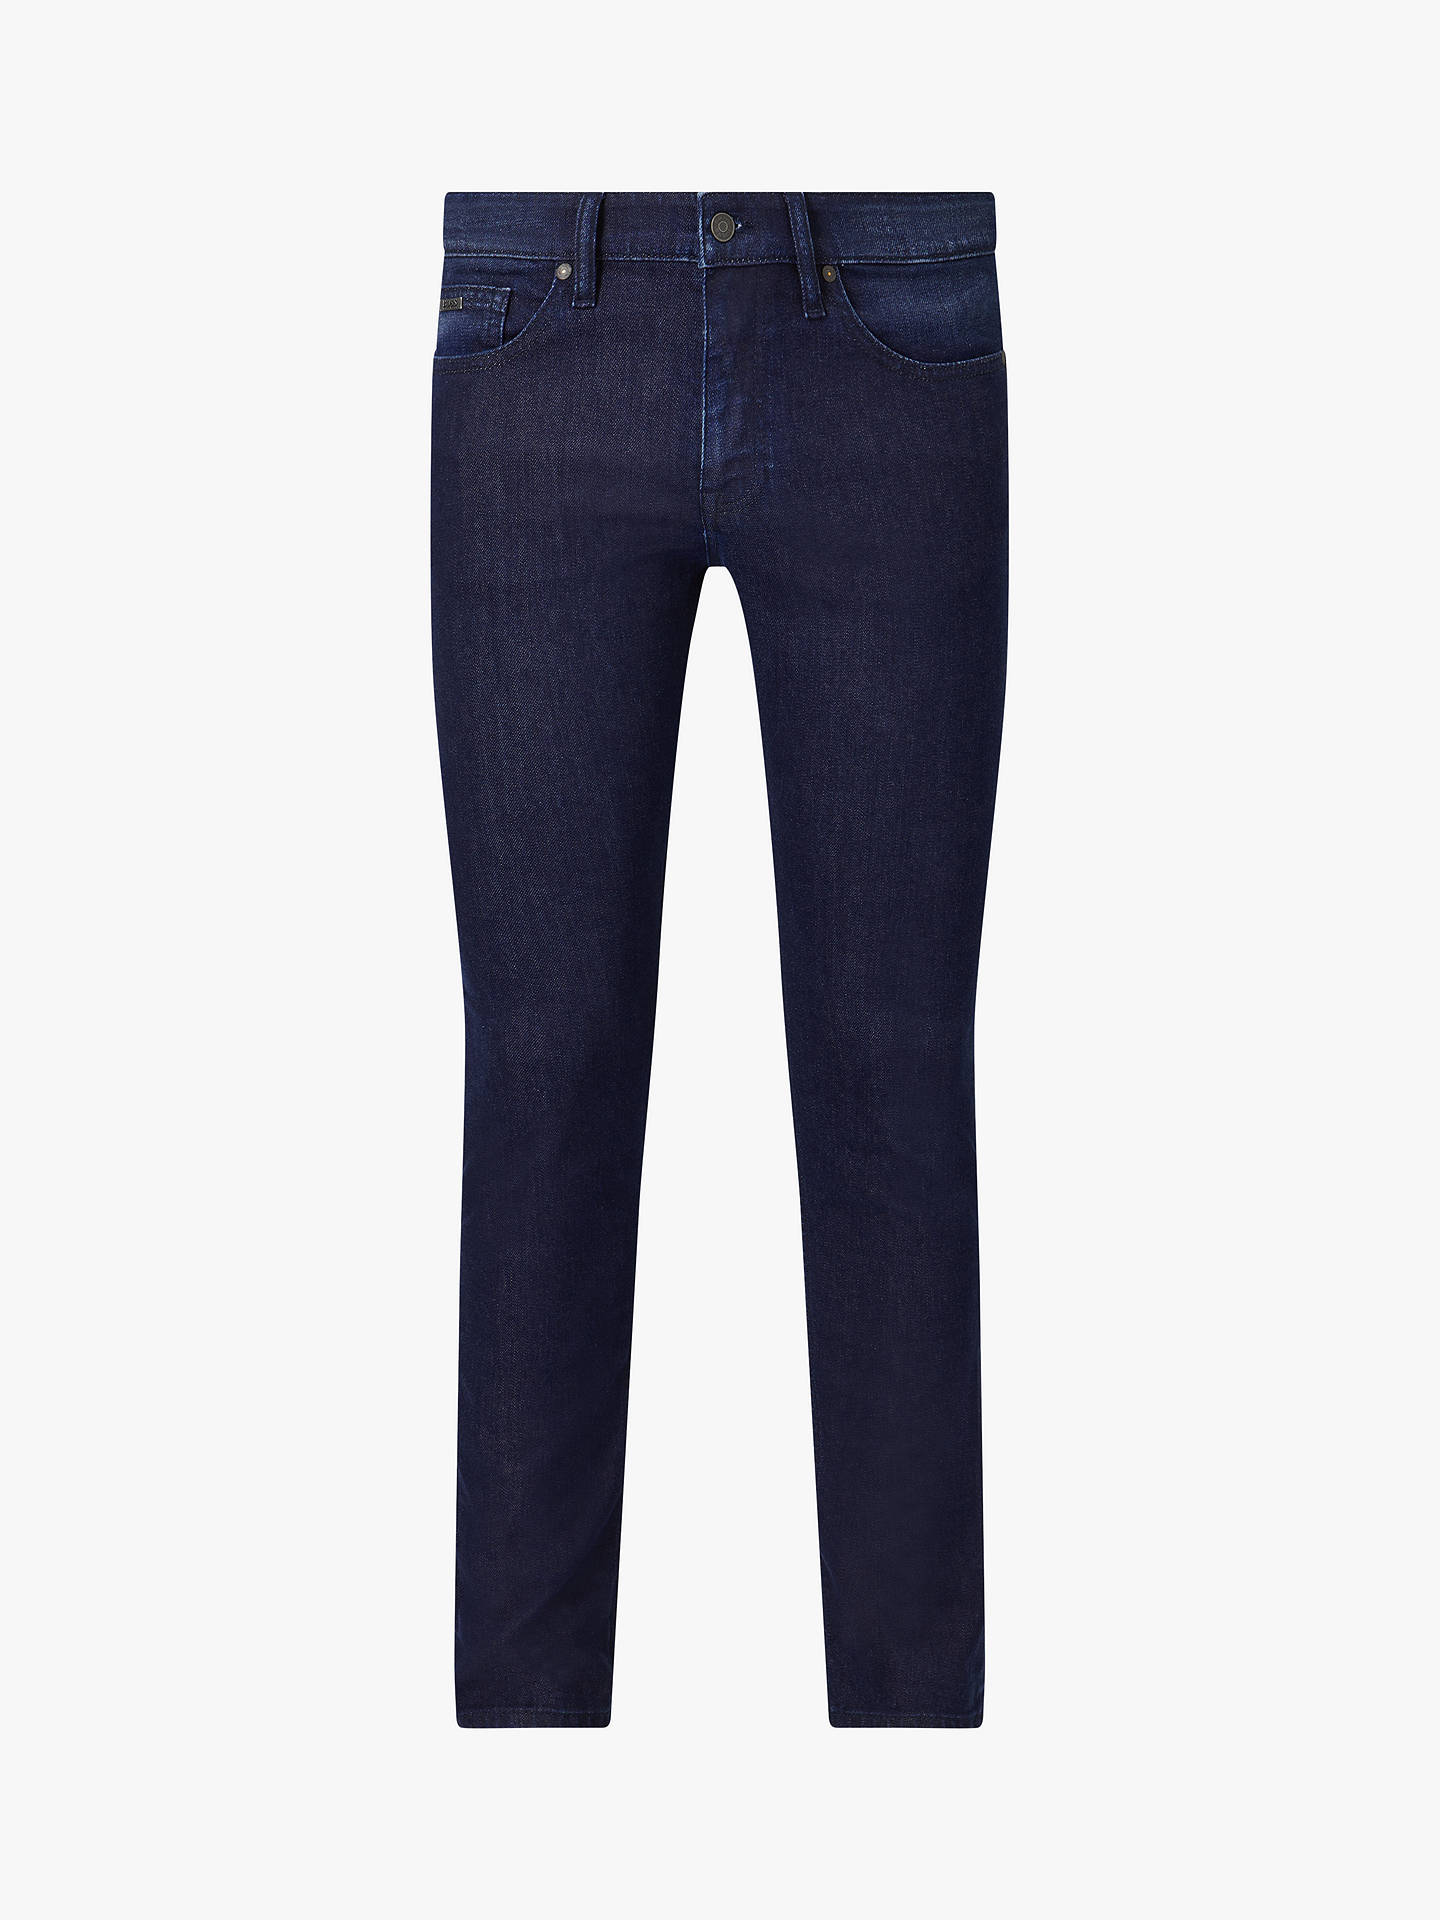 BuyBOSS Delaware Slim Fit Jeans, Navy, 30R Online at johnlewis.com